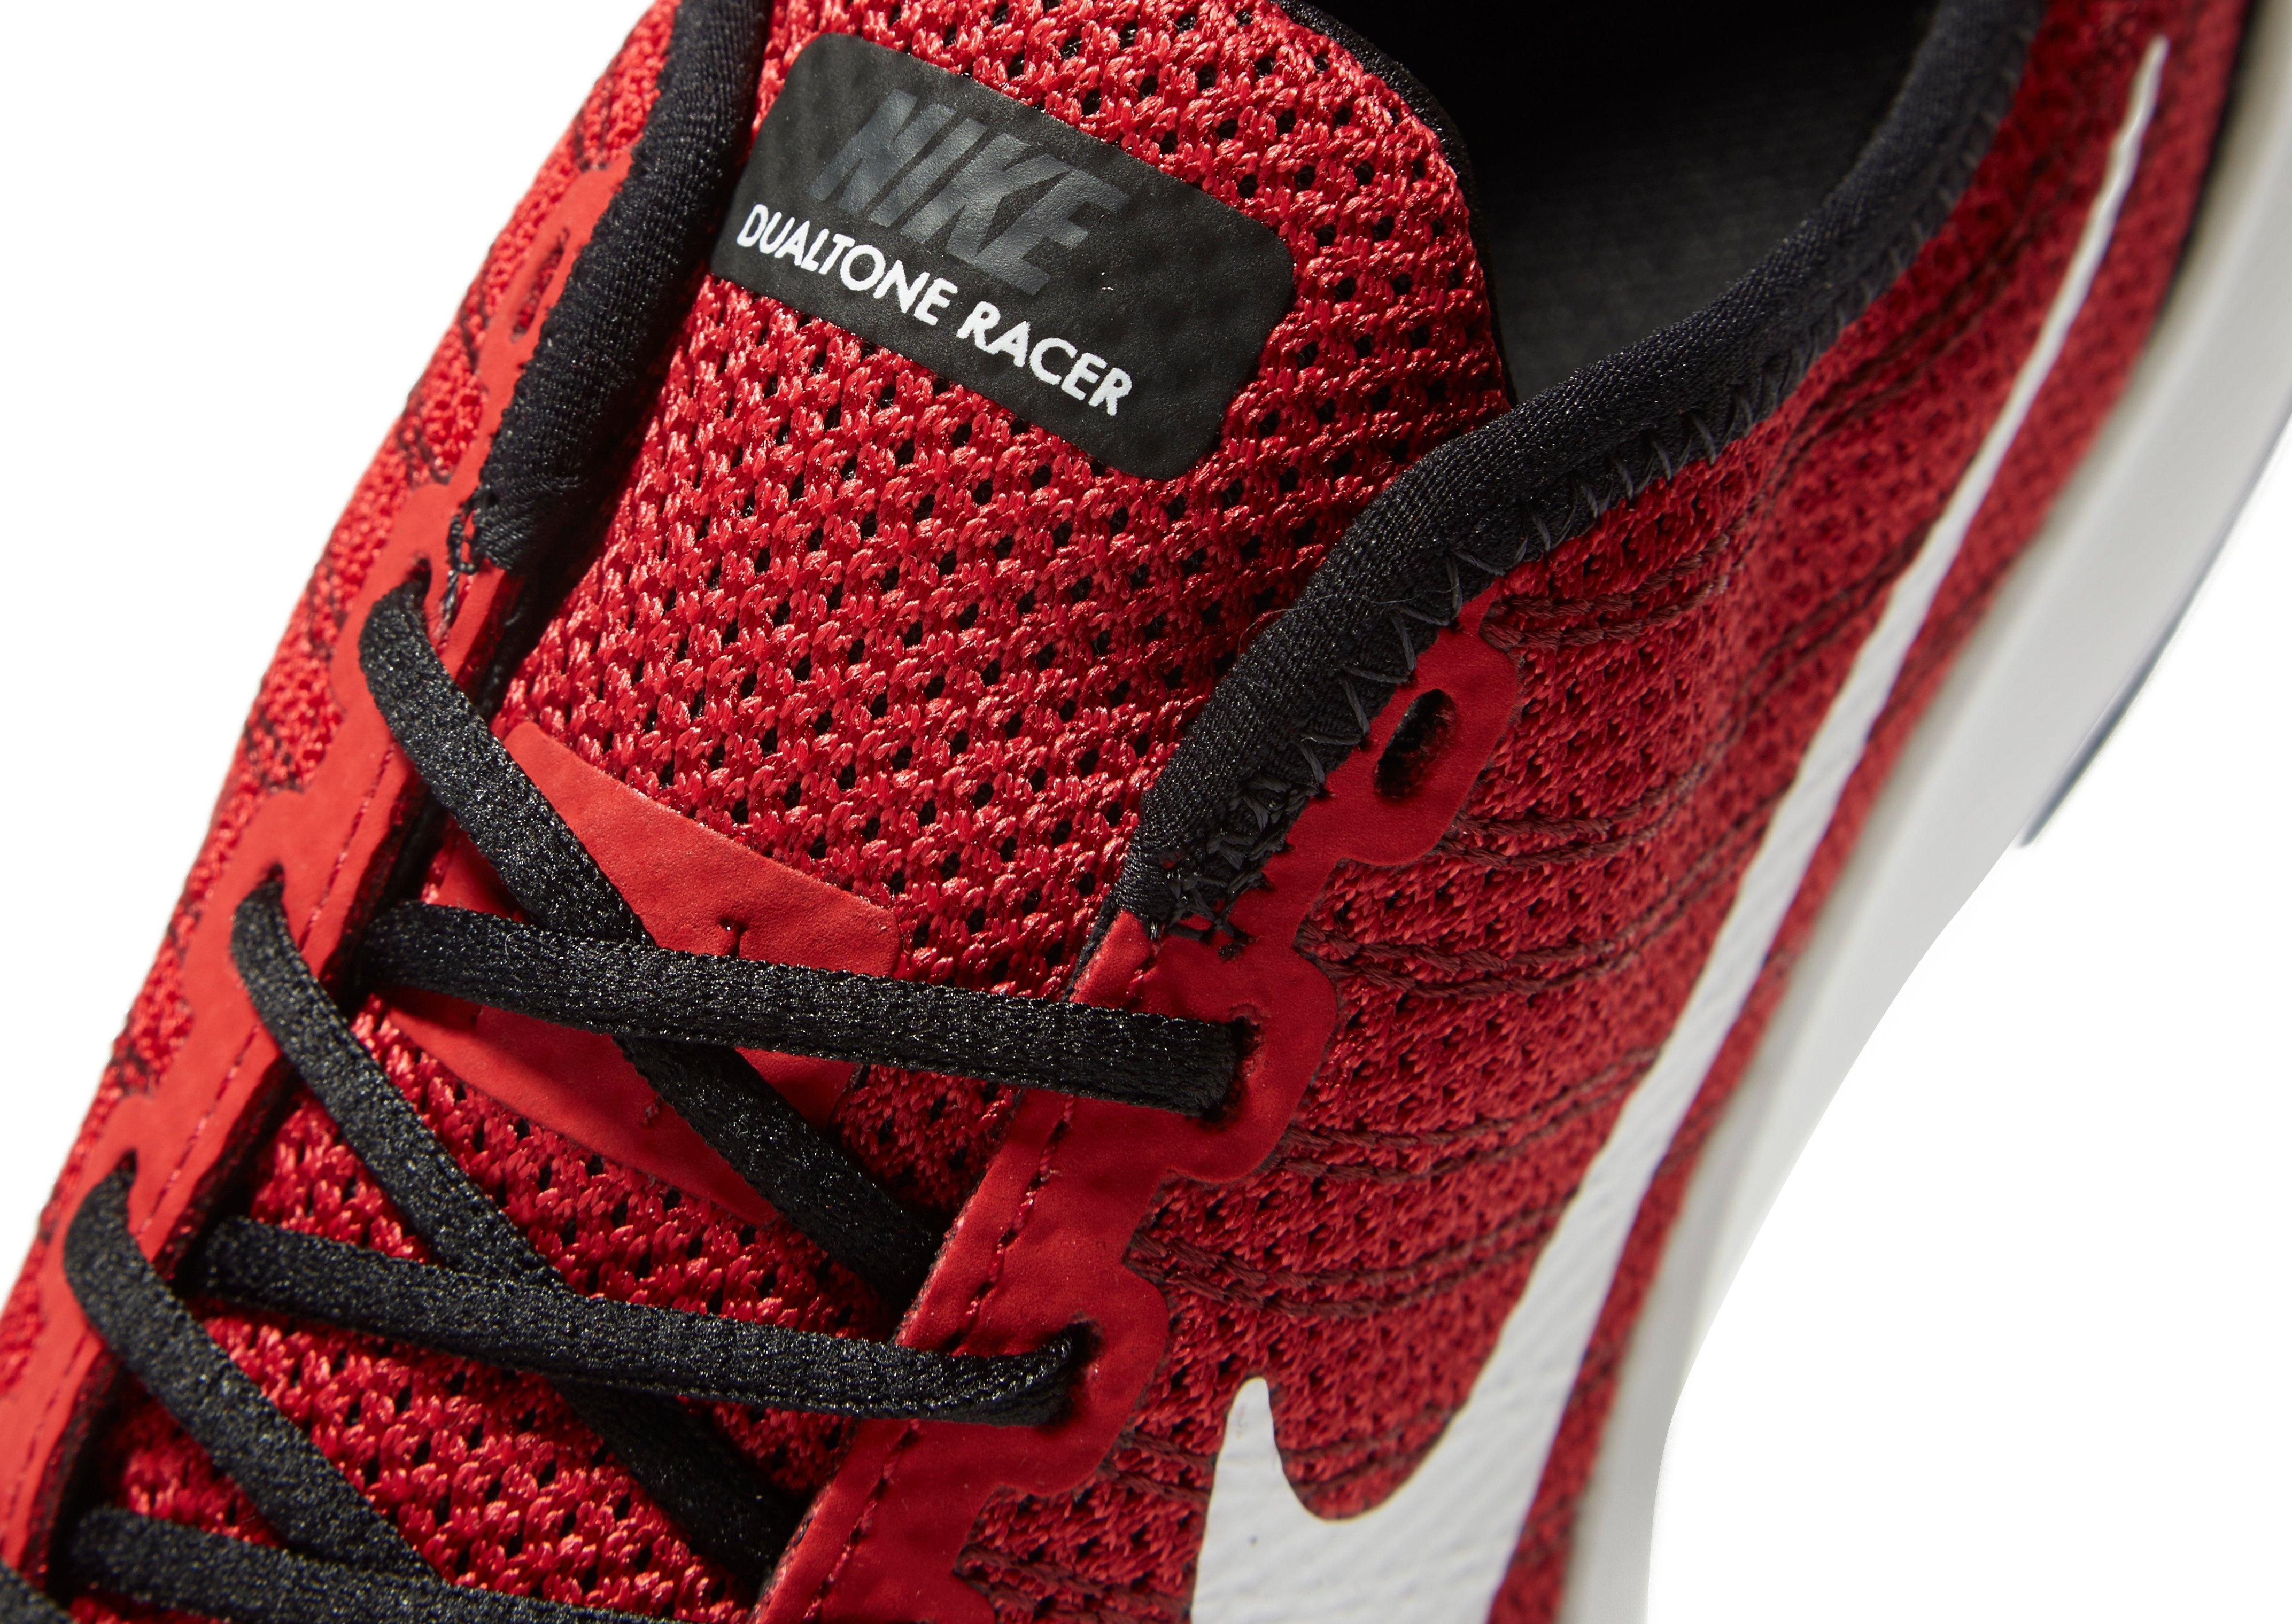 2615c4825 A shoe made with bad quality leather might also result in allergic problems  sooner or later. Once the game starts